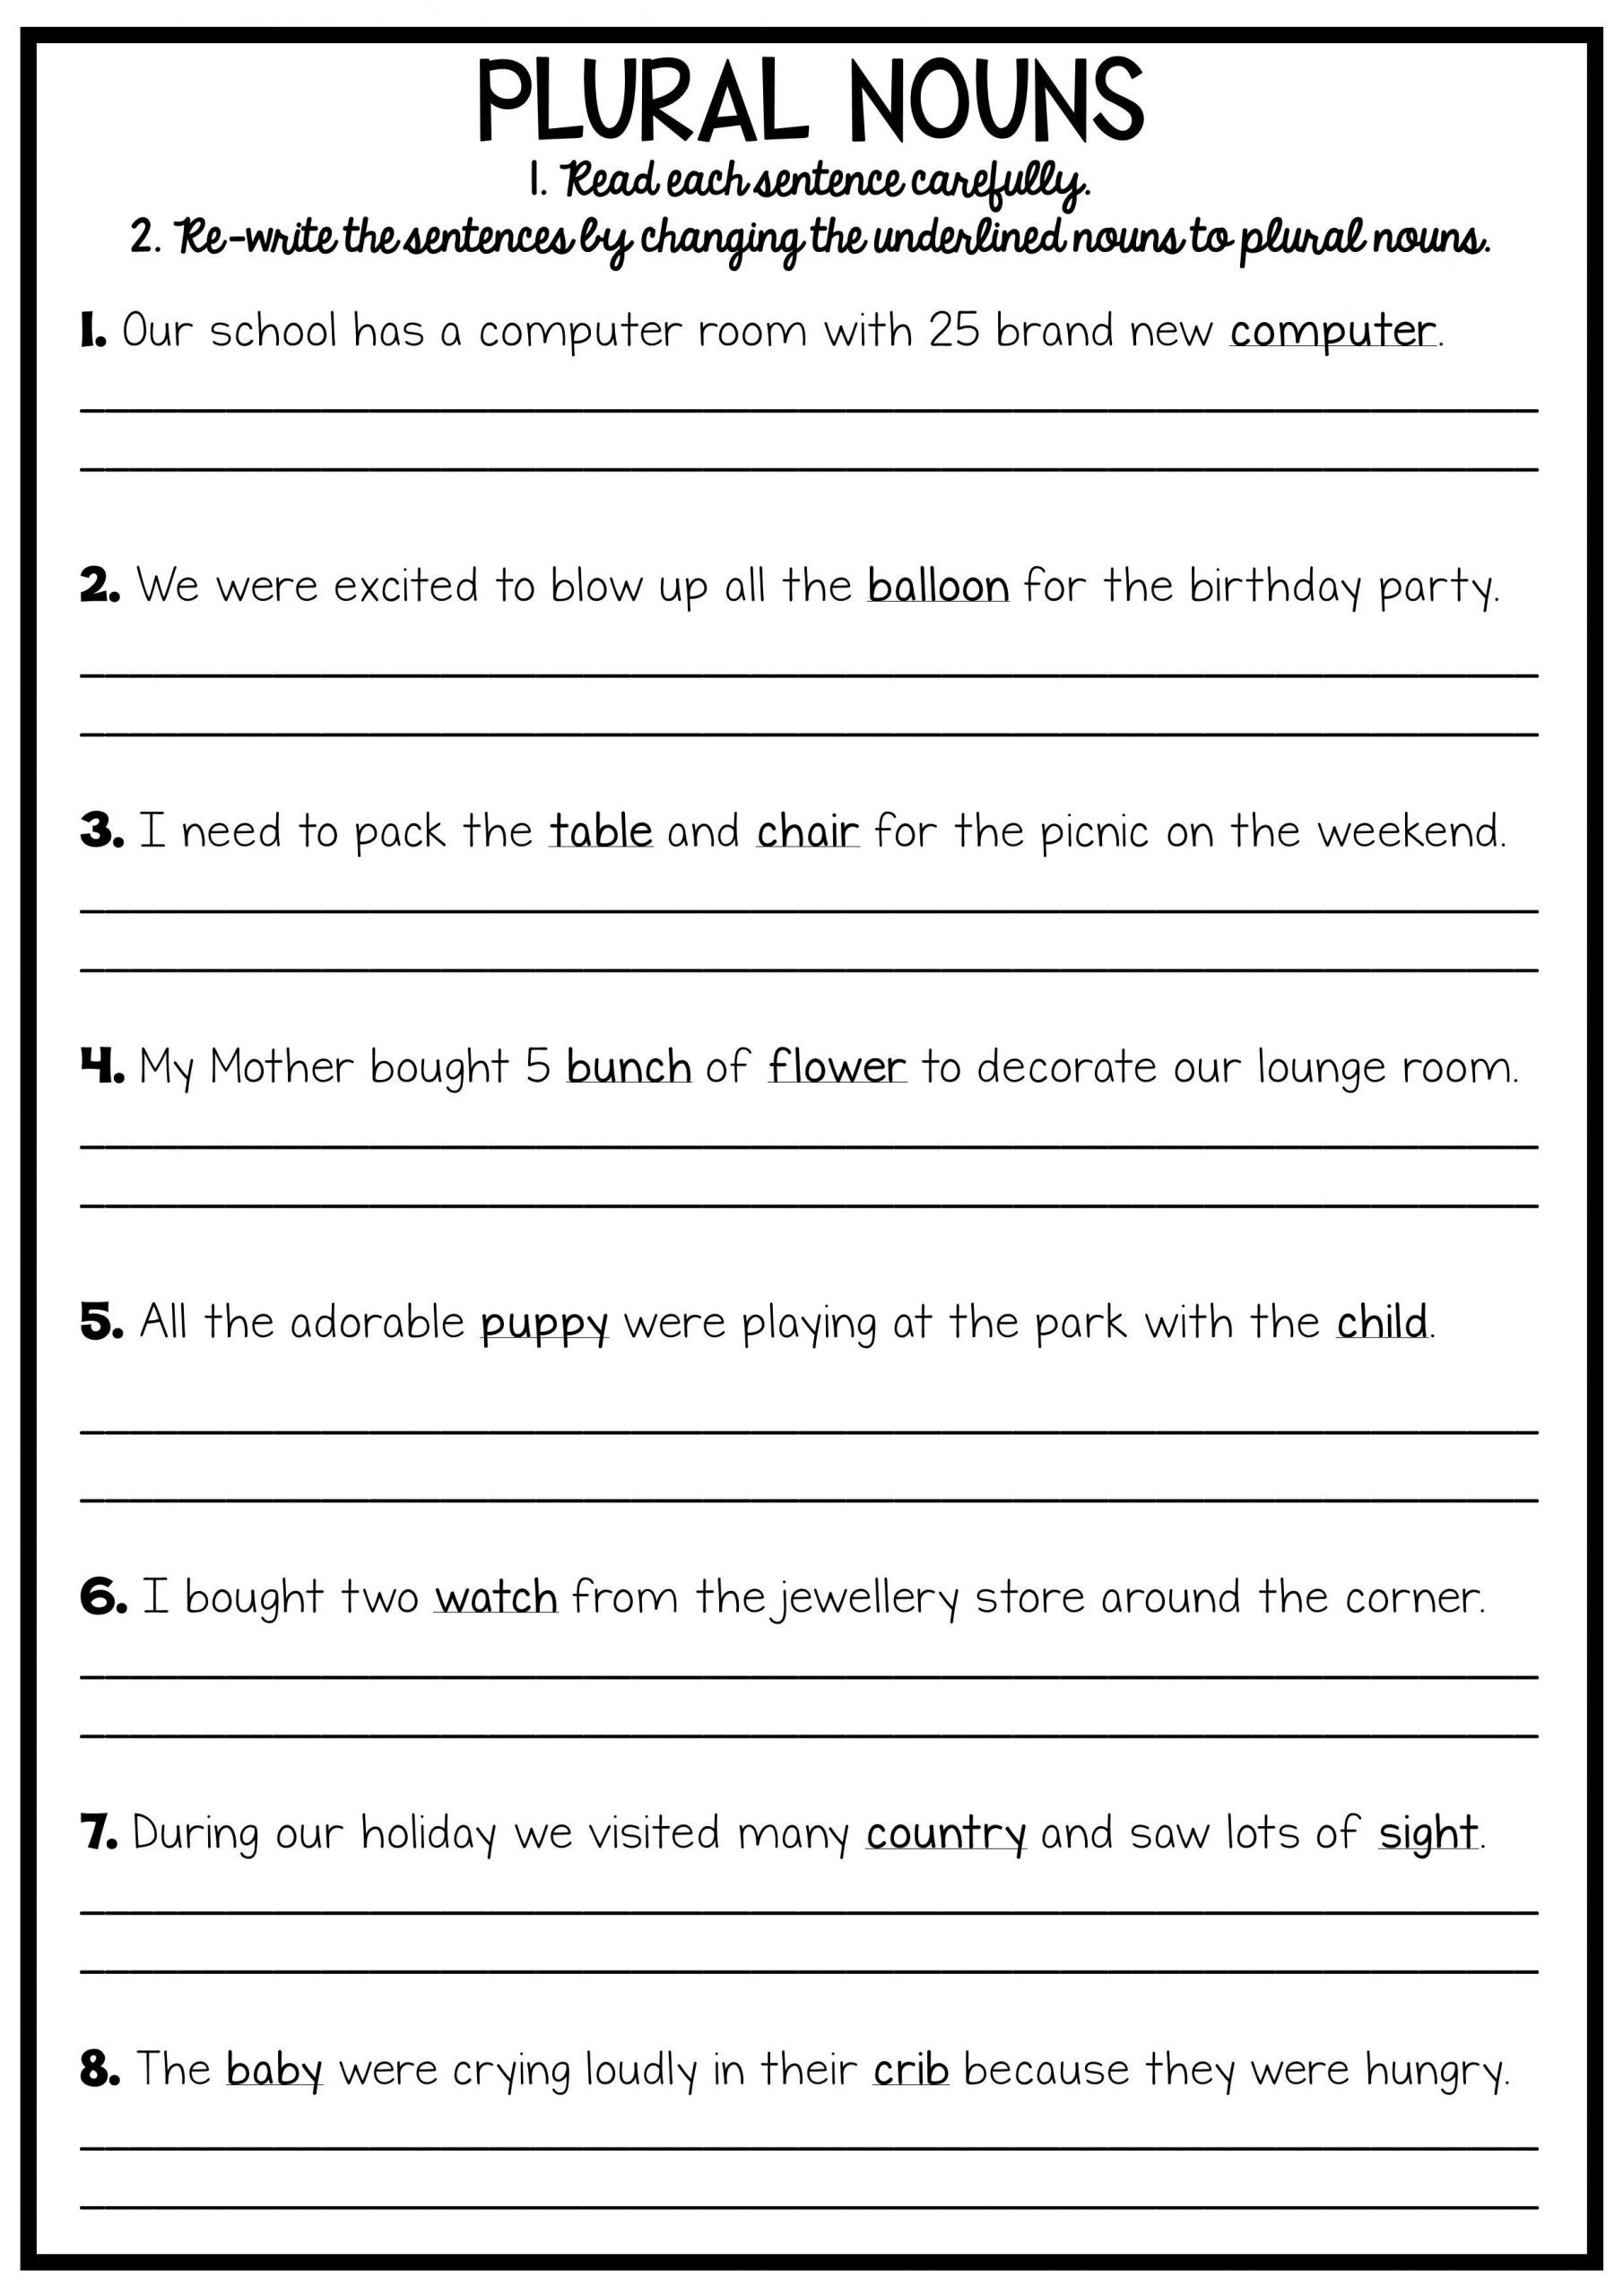 Third Grade Grammar Worksheet Grammar Worksheets 8th Grade English Printable Reading